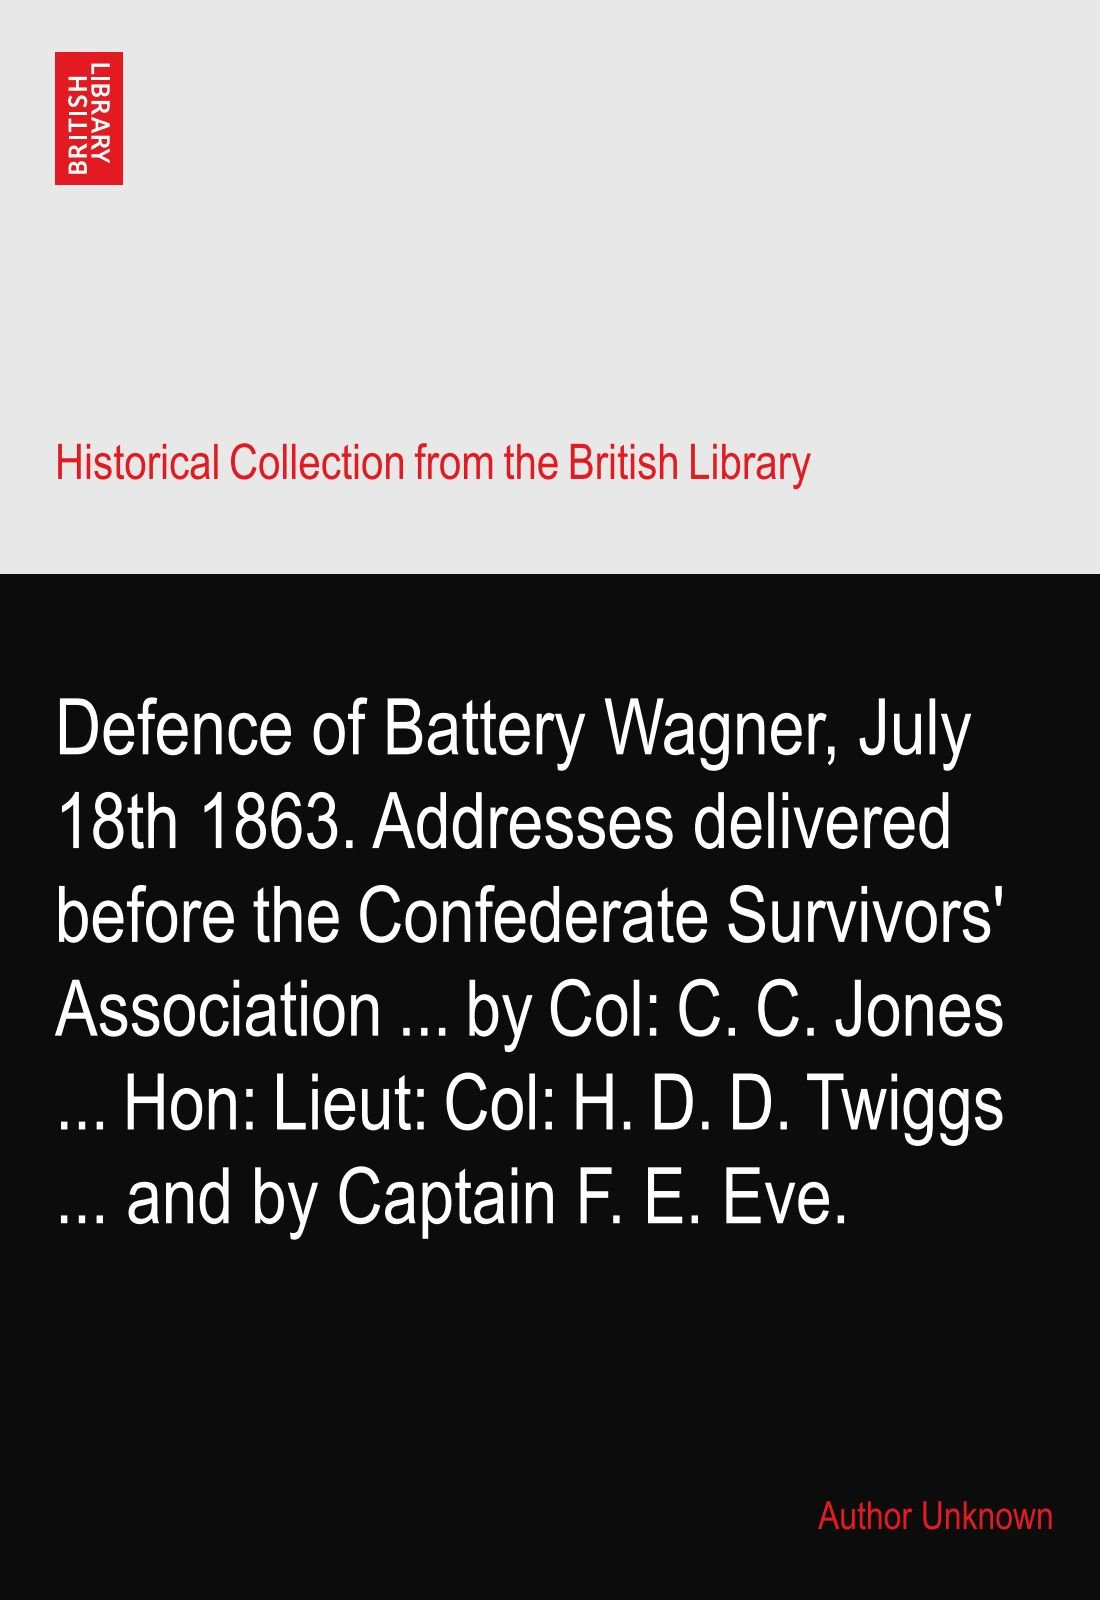 Defence of Battery Wagner, July 18th 1863. Addresses delivered before the Confederate Survivors' Association ... by Col: C. C. Jones ... Hon: Lieut: Col: H. D. D. Twiggs ... and by Captain